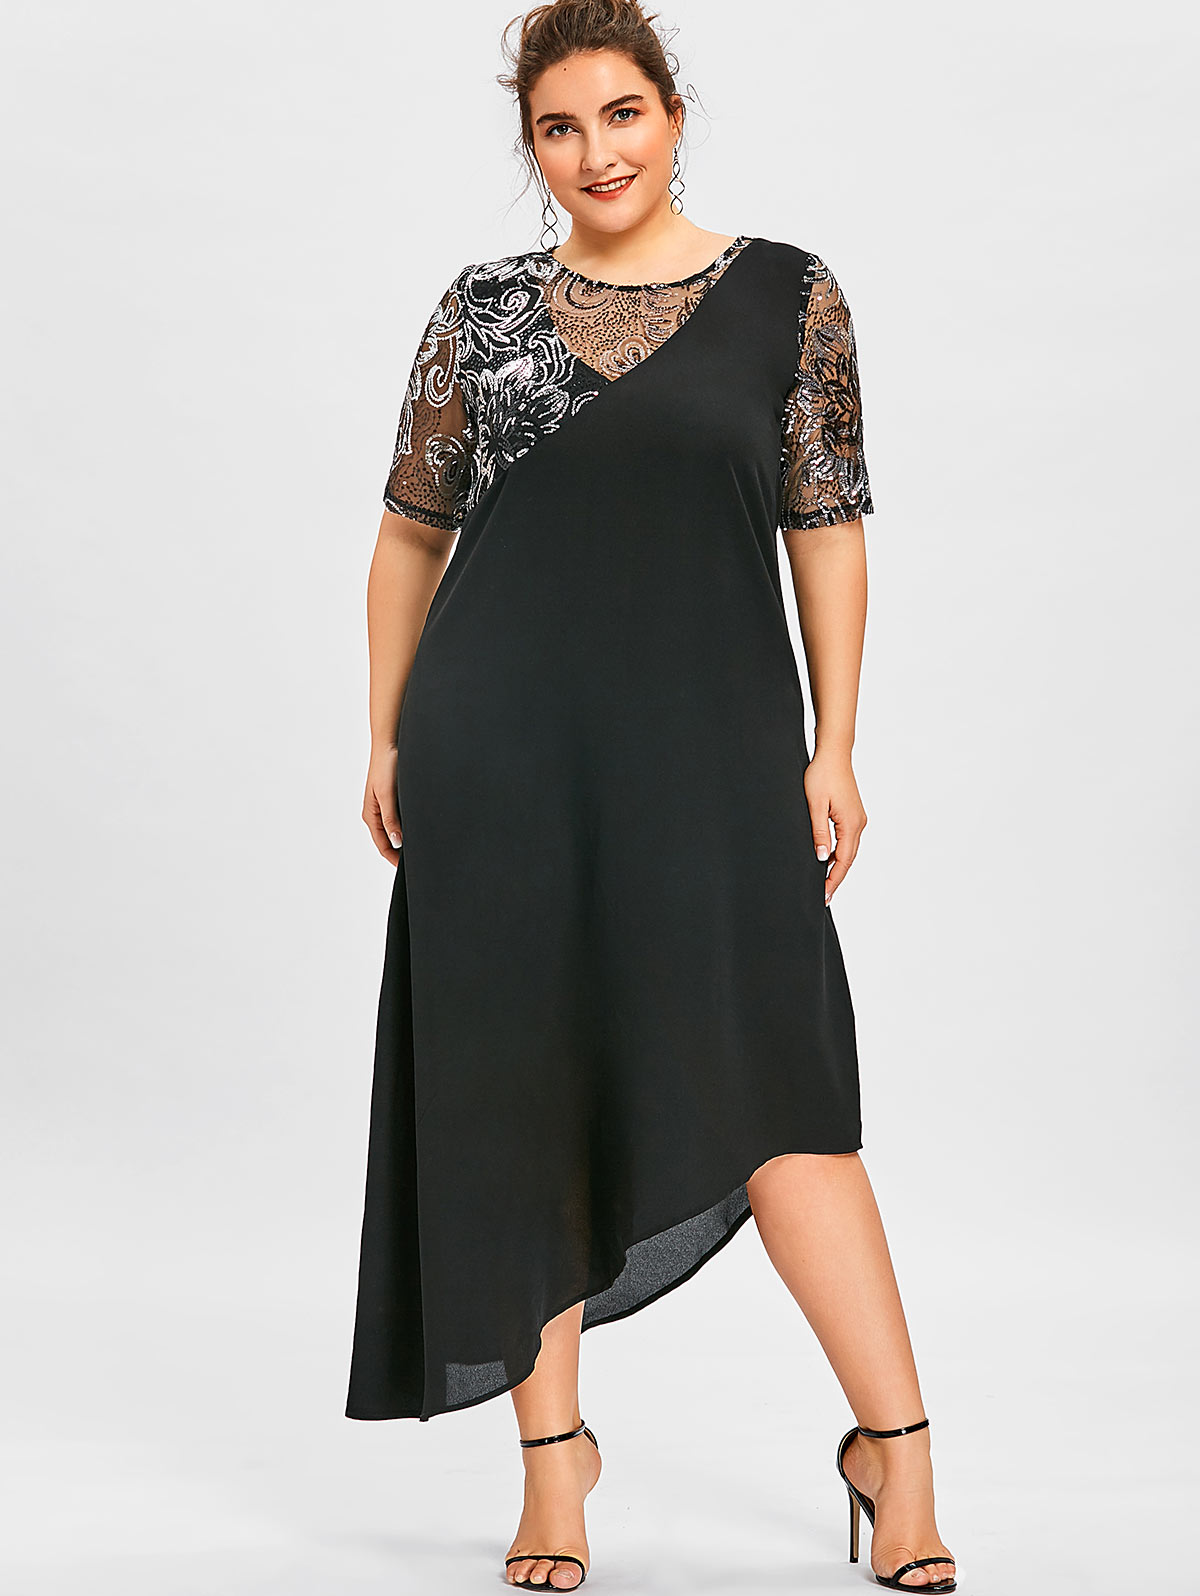 US $15.53 48% OFF|Wipalo Women Sparkly Party Dresses Plus Size 5XL Sequined  Asymmetric Maxi Dress Summer Elegant Black Half Sleeves Dress Vestidos-in  ...